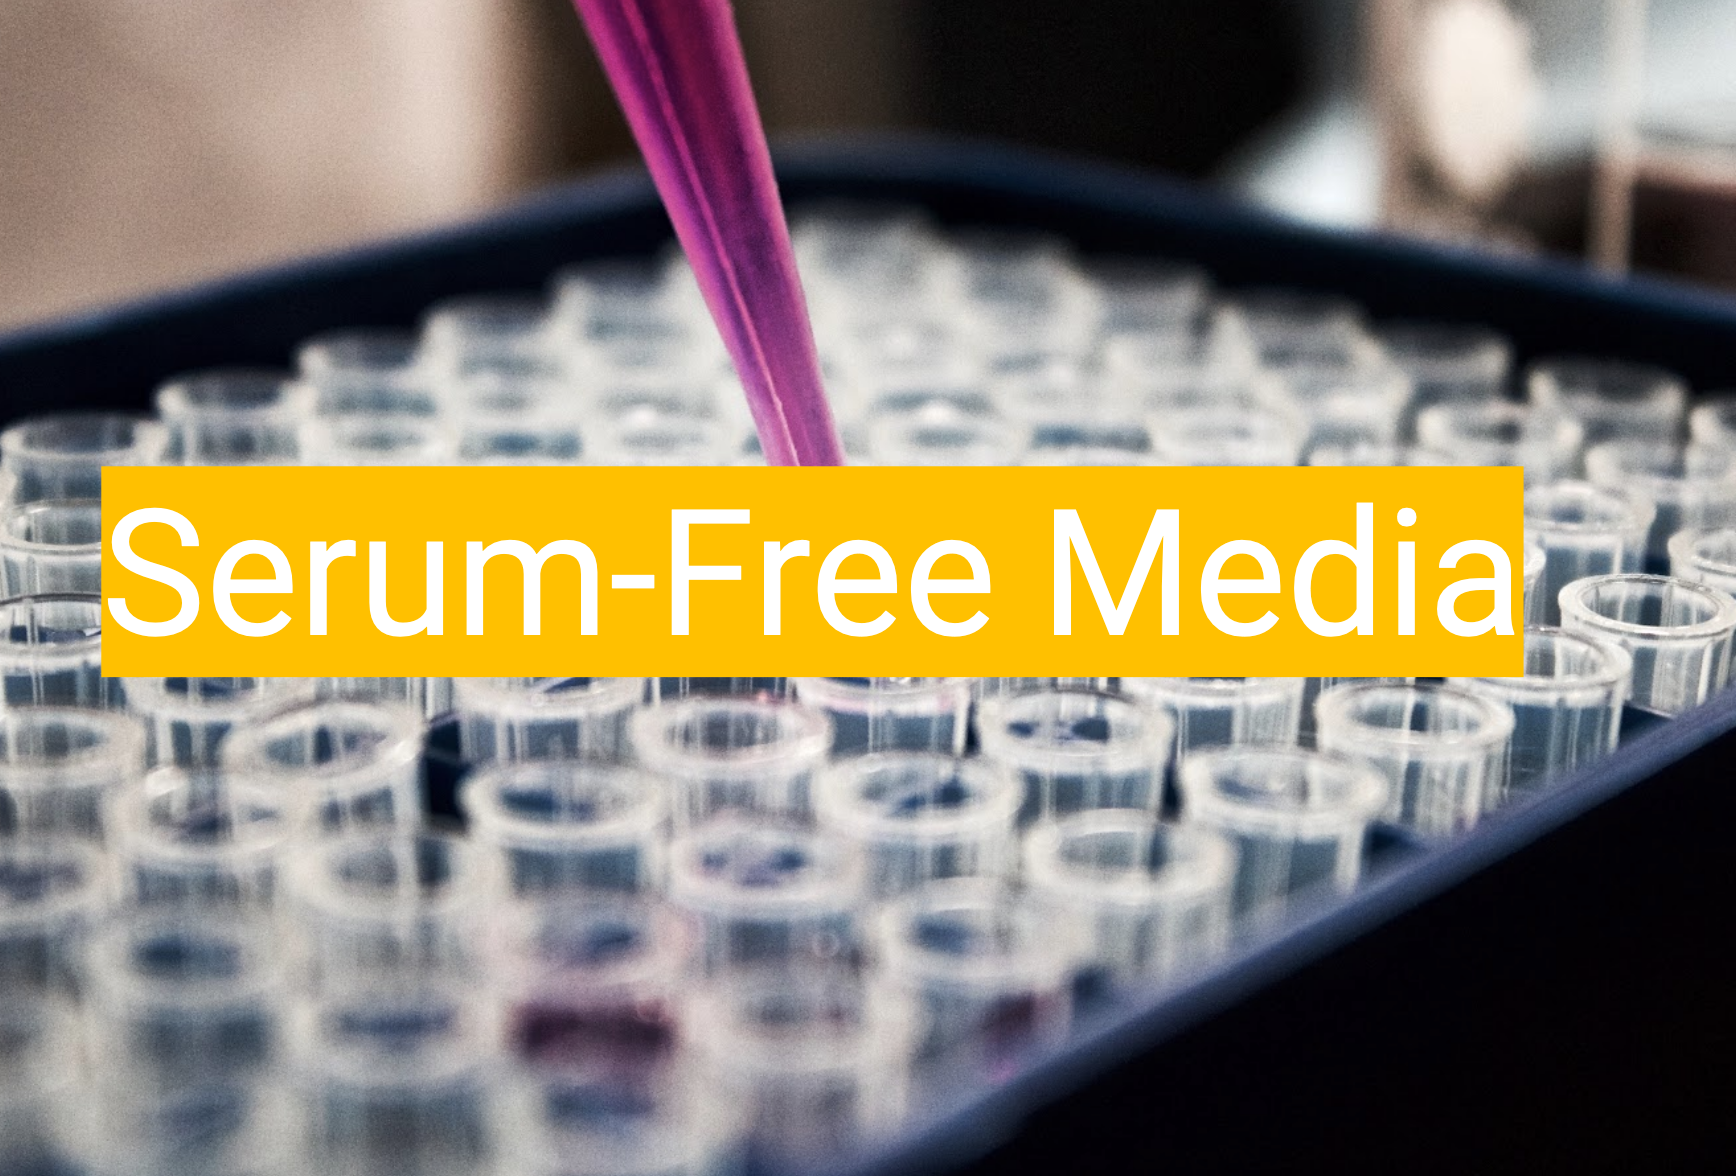 FF-SFM1 - Our first product is a serum-free media to replace FBS-supplemented media for cell growth.